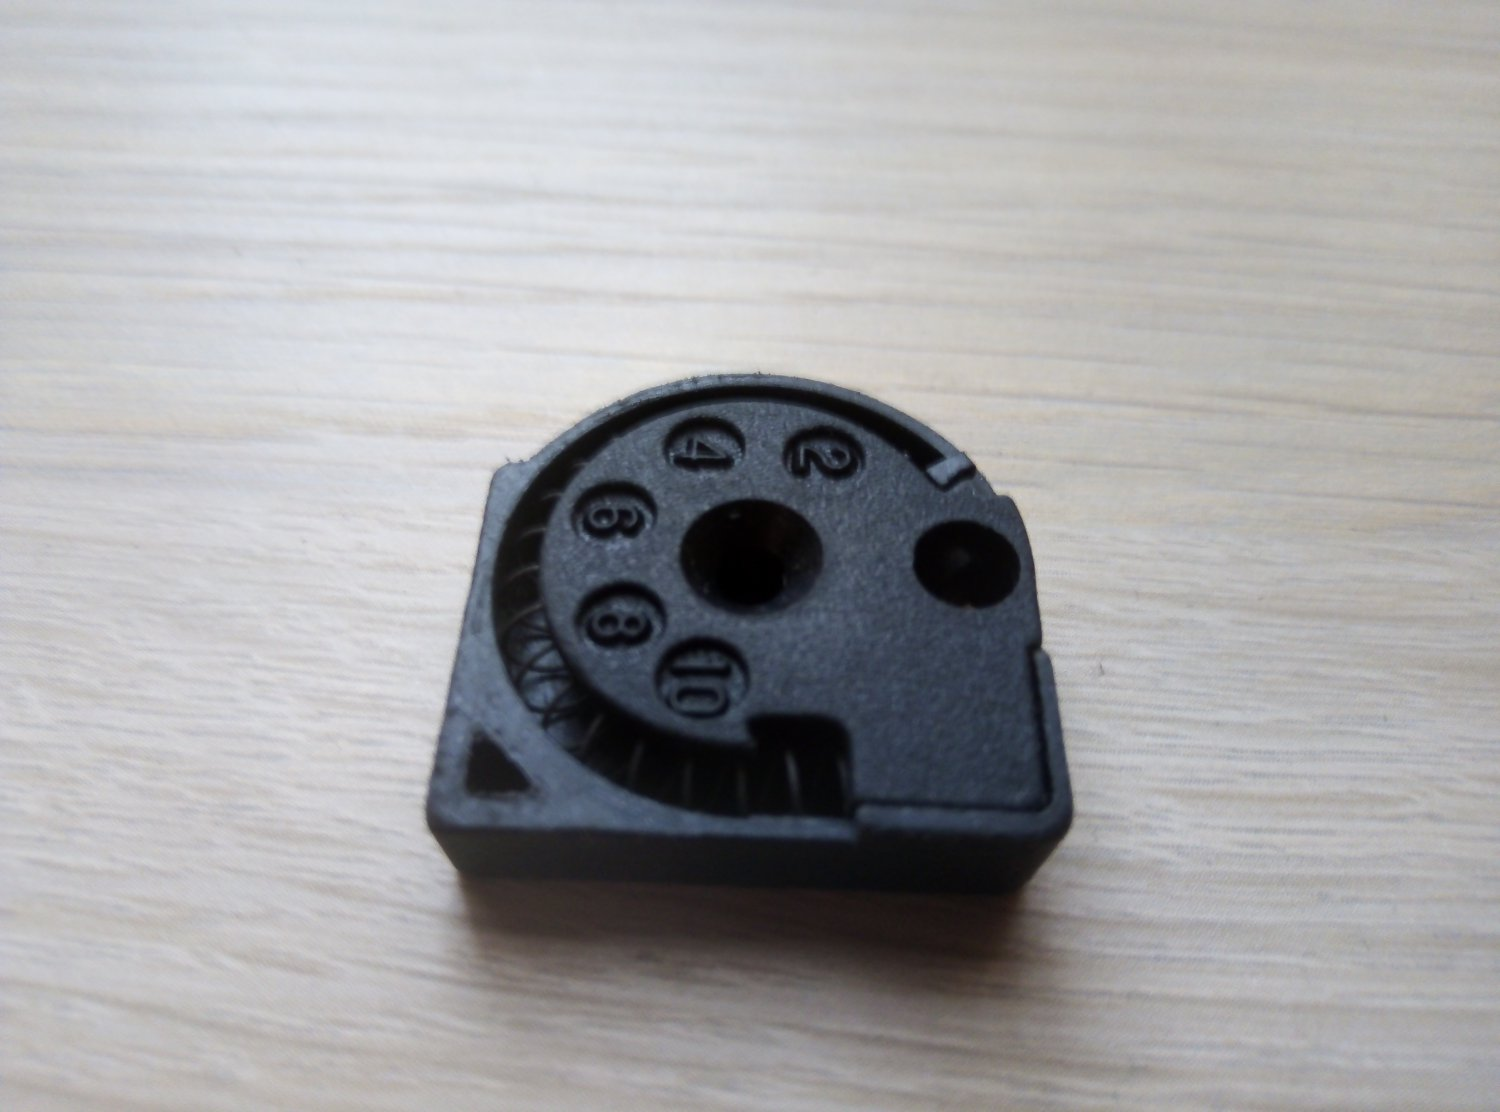 mp-514k magazine granules for spherical shape upgrade spare parts tuning comfortable use baikal.